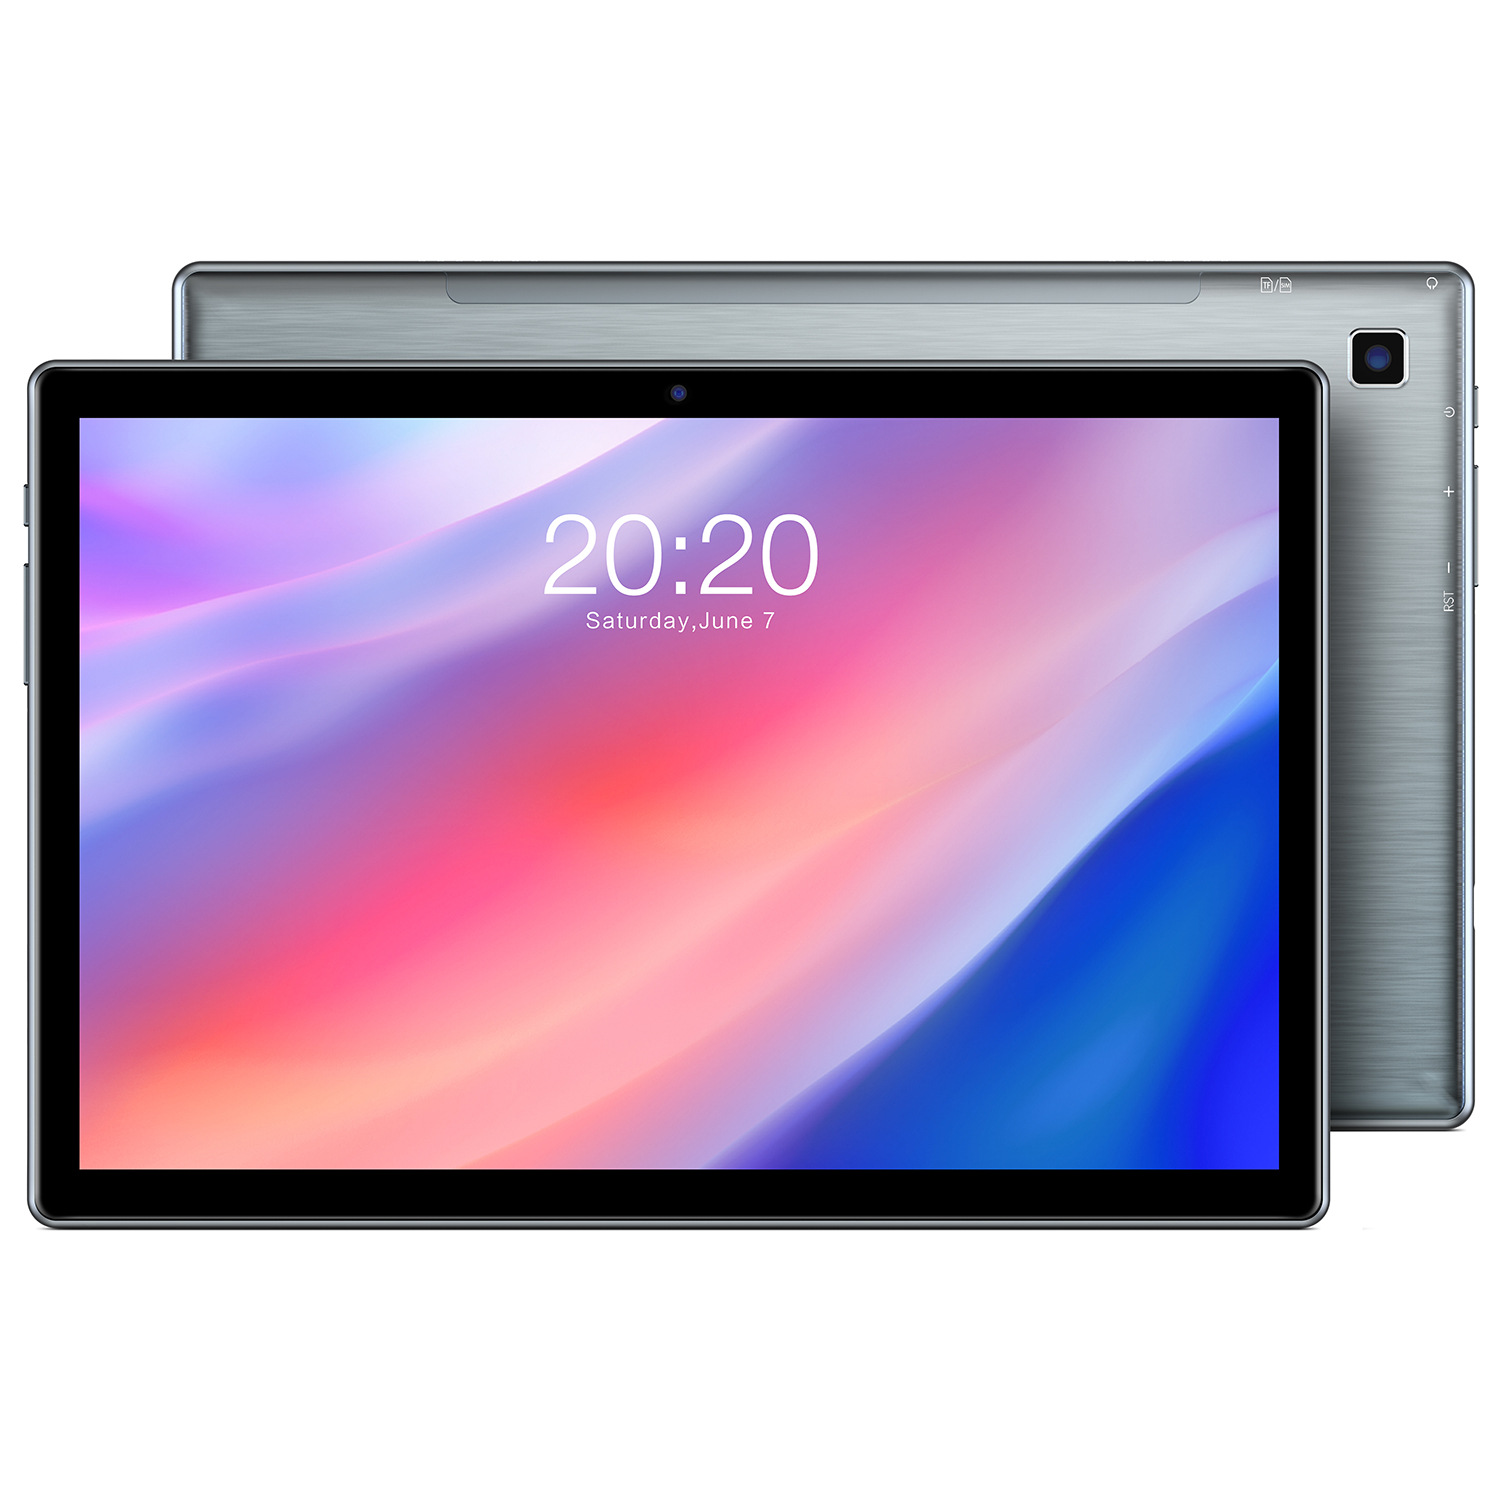 Teclast Taipower p20hd 10.1-inch IPS high definition screen all Netcom 4G Android 10 tablet 64g onli